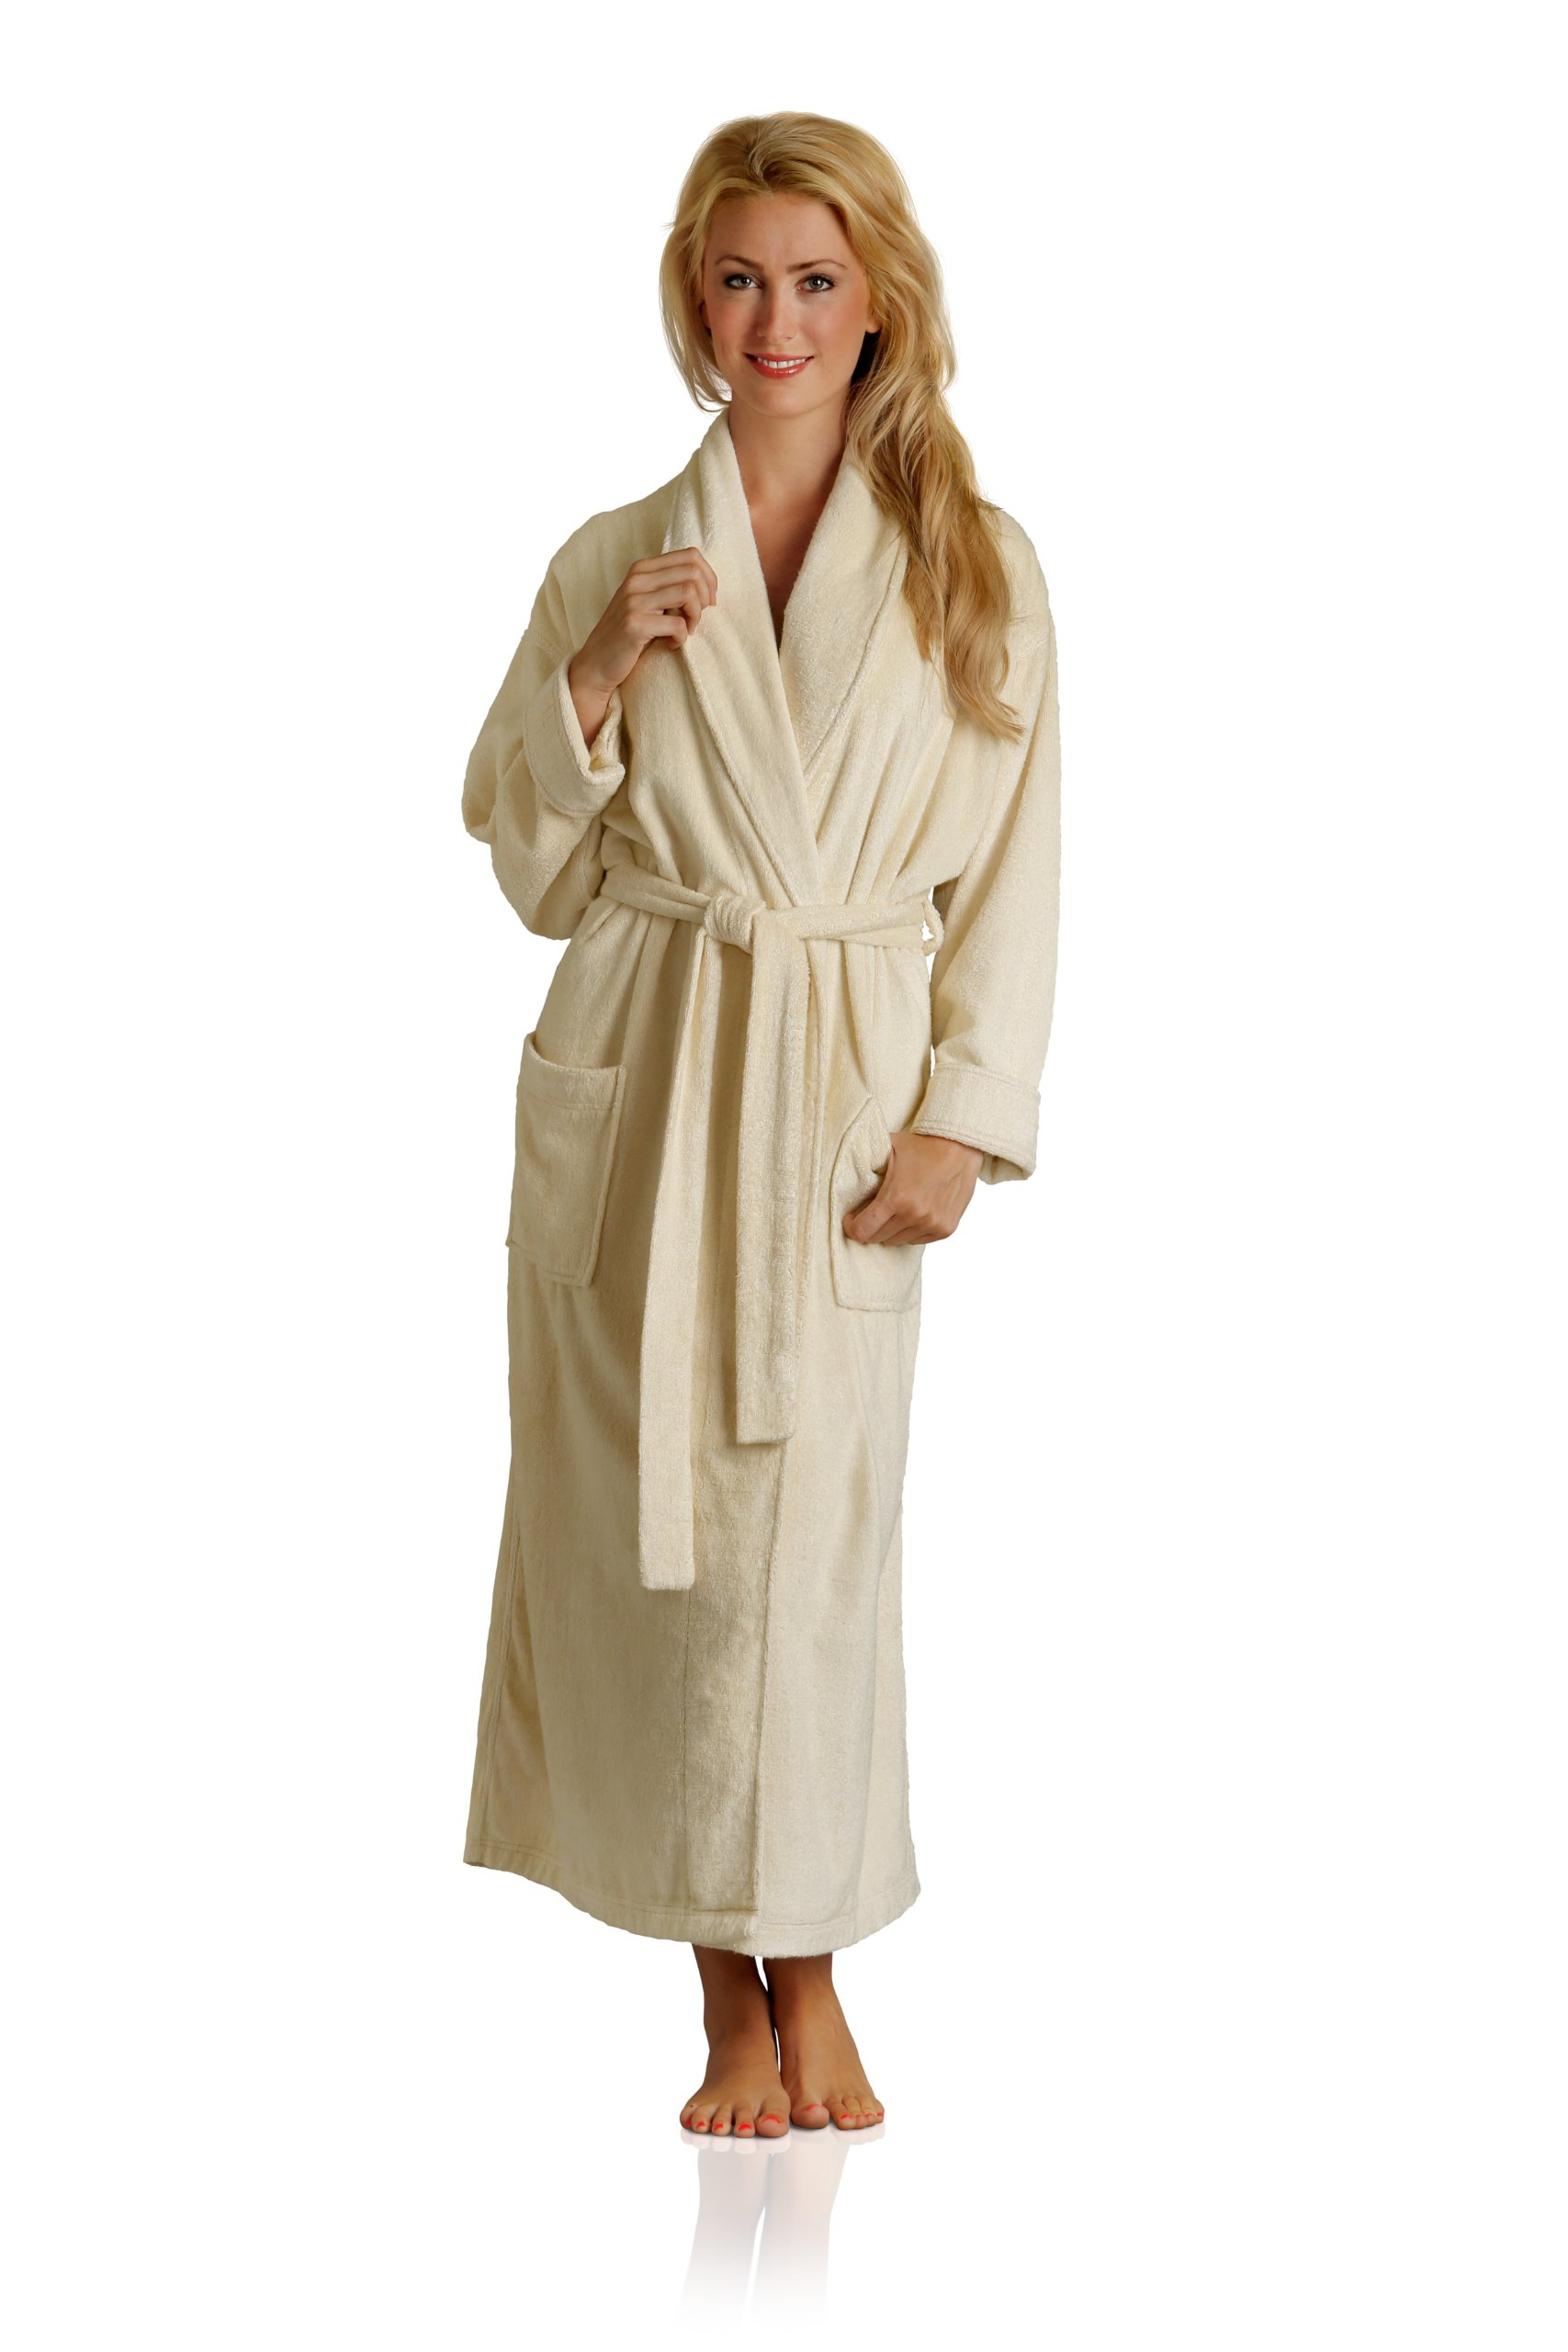 Pure Bliss Terry Robe - Super Absorbent and Soft - Cotton and Rayon from Bamboo in Oatmeal, Medium